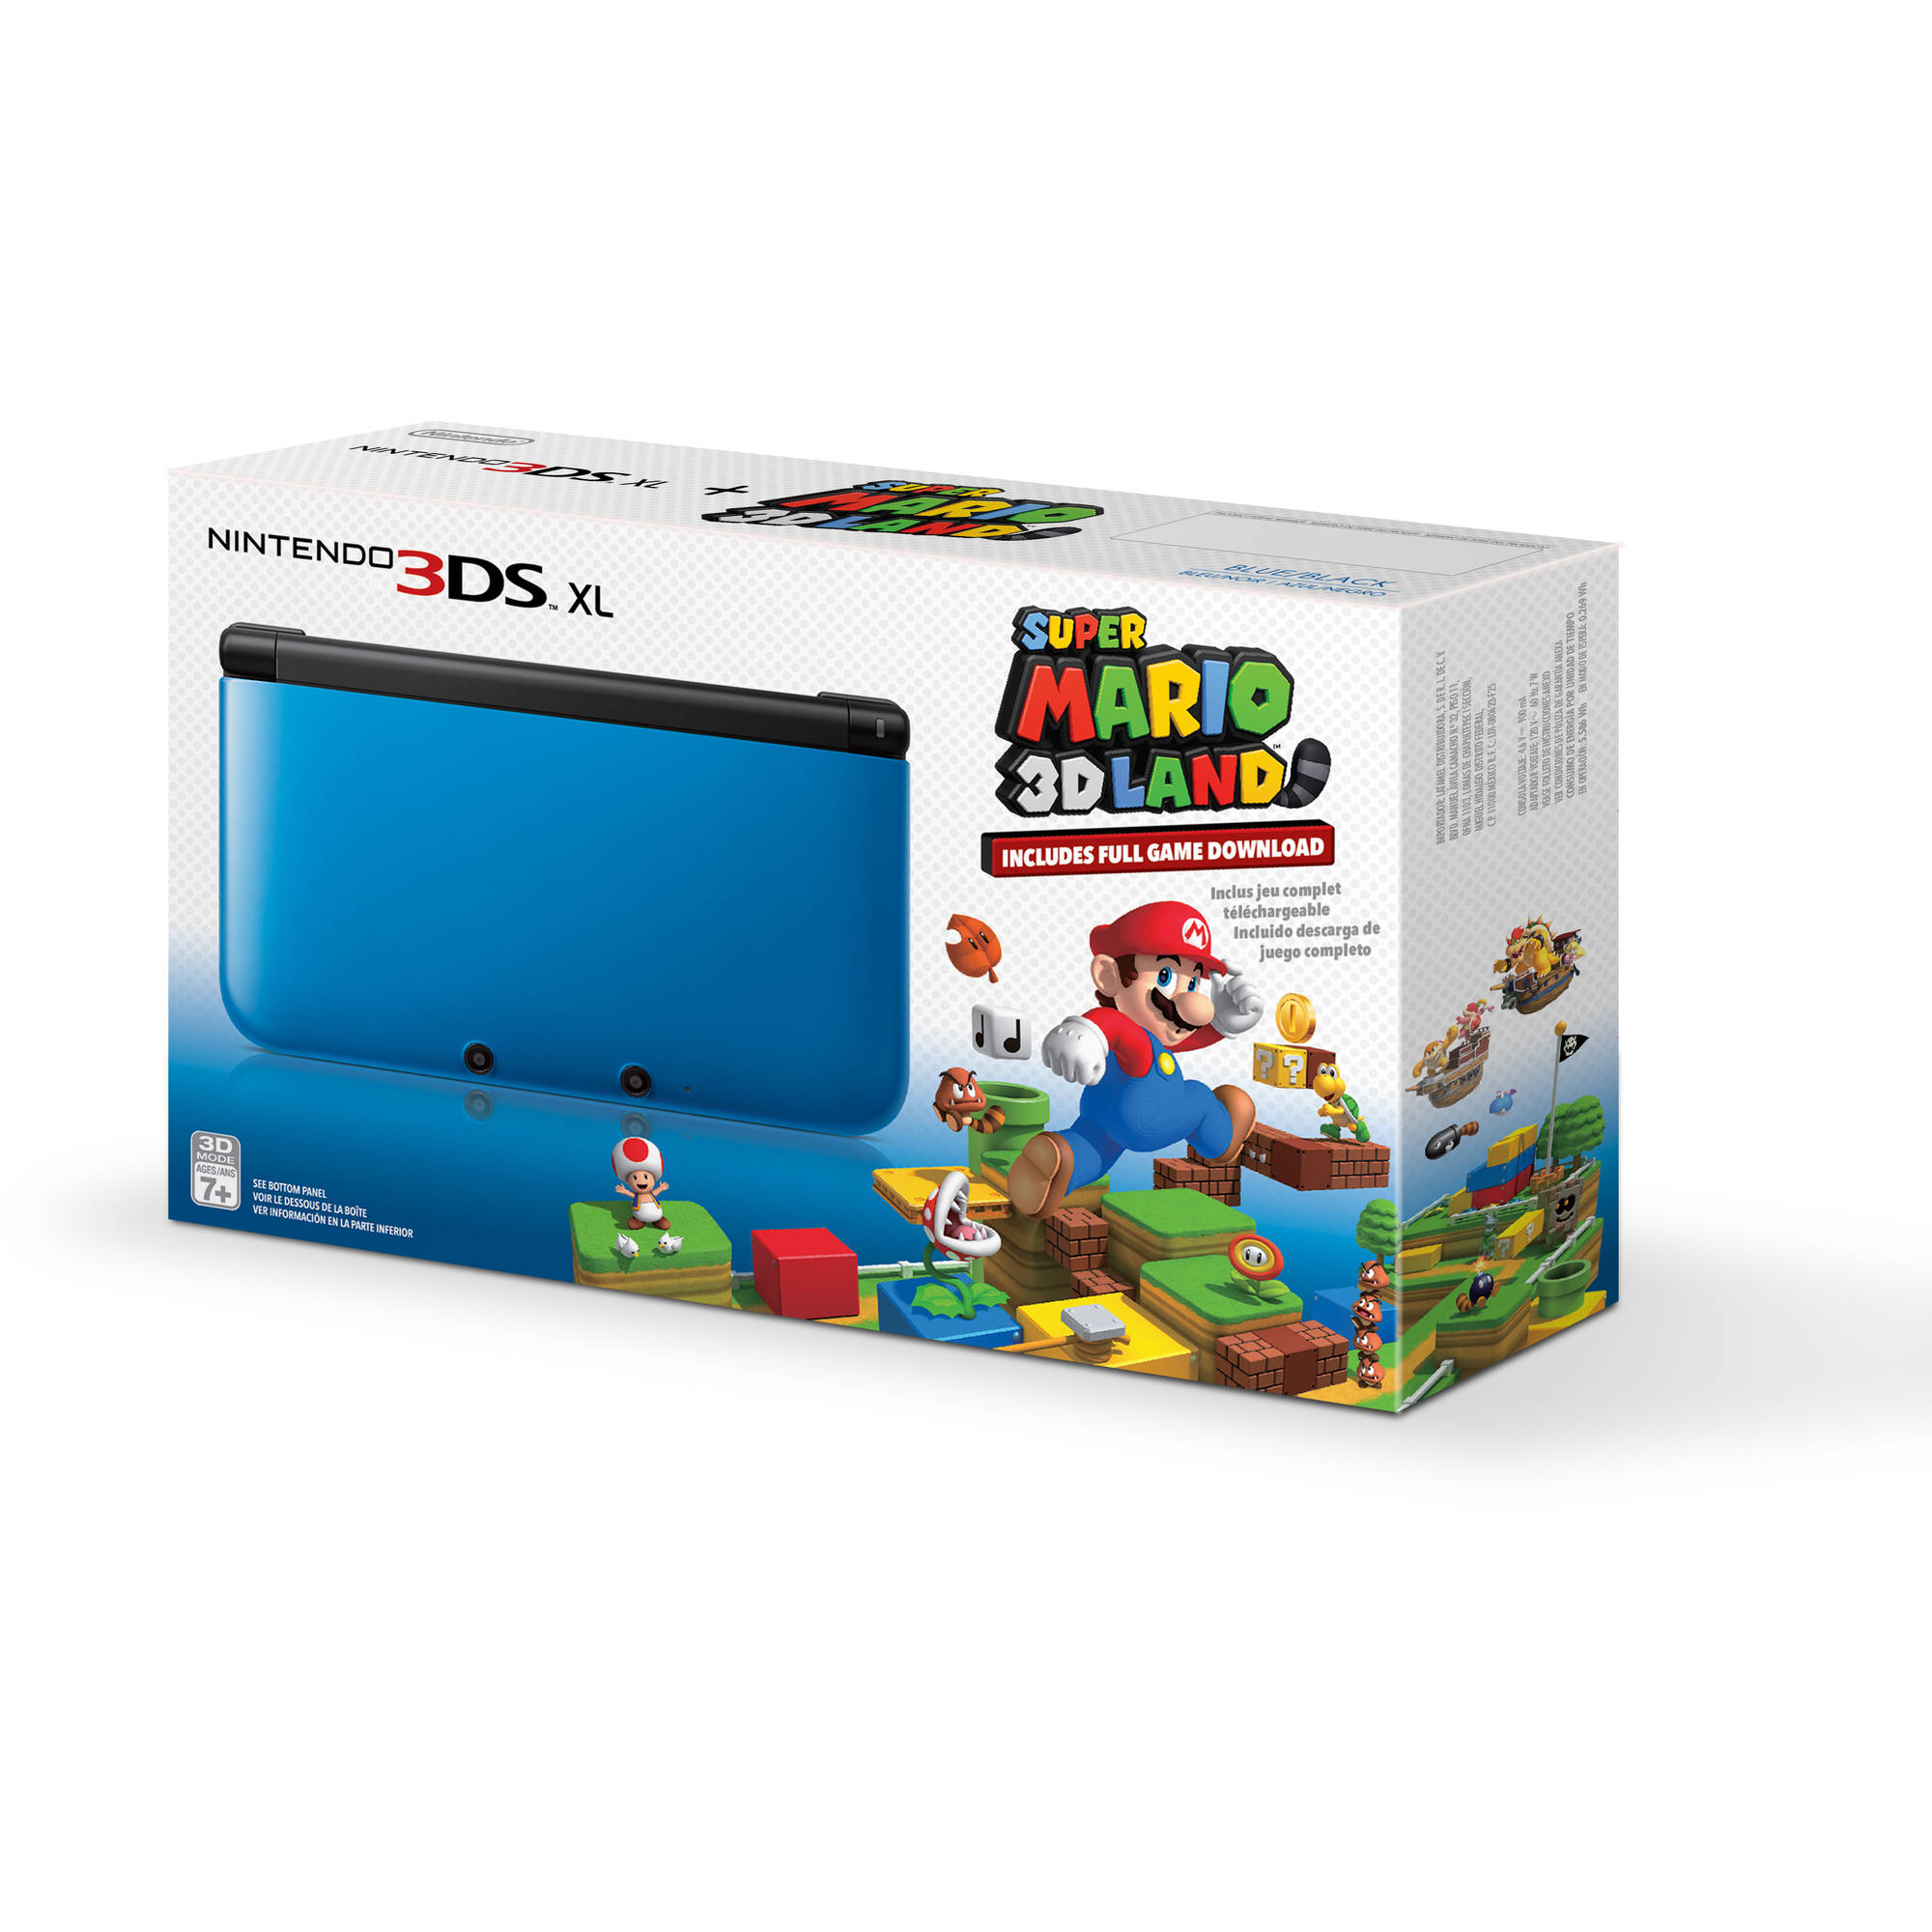 Nintendo 3DS XL Handheld Console with Super Mario 3D Land, Blue